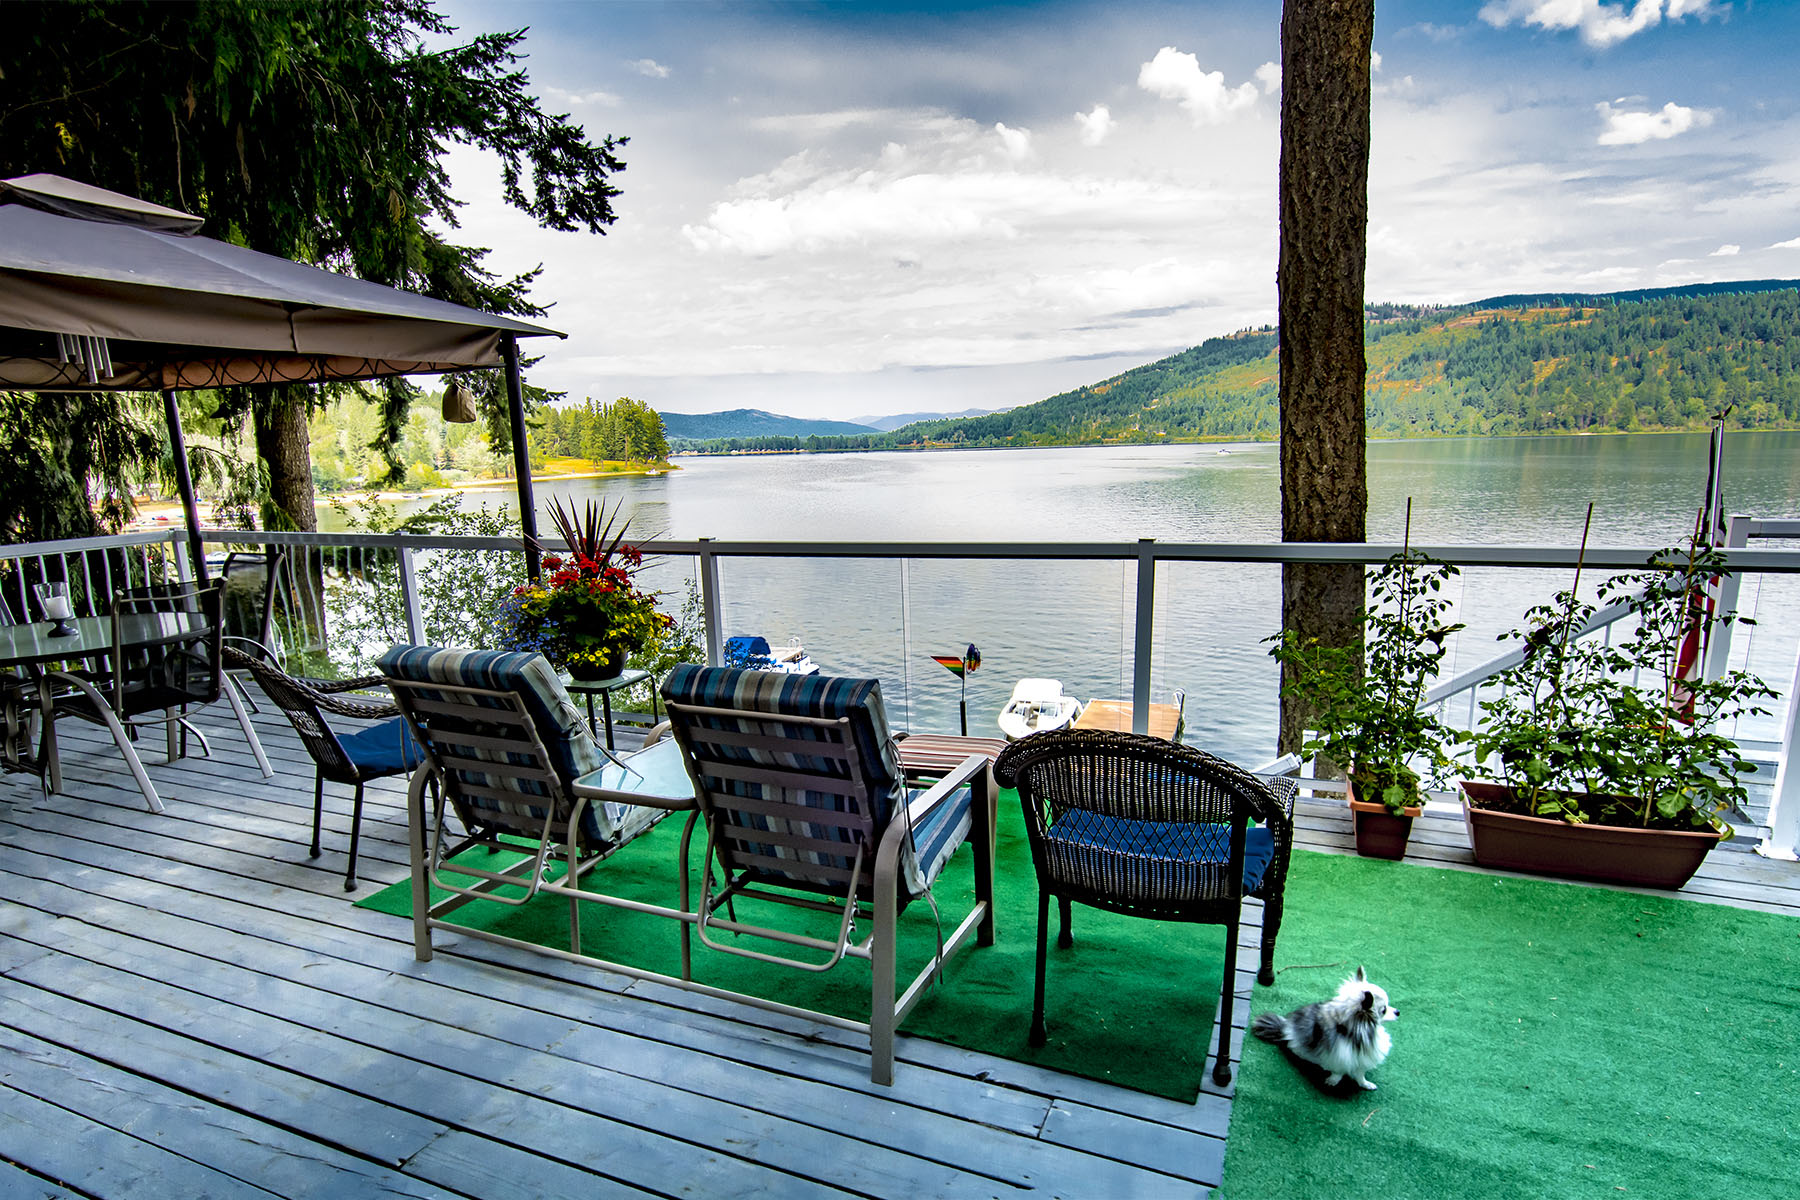 Single Family Home for Sale at Great Waterfront Home with Dock 133 Shadow Cove Lane Cocolalla, Idaho 83813 United States